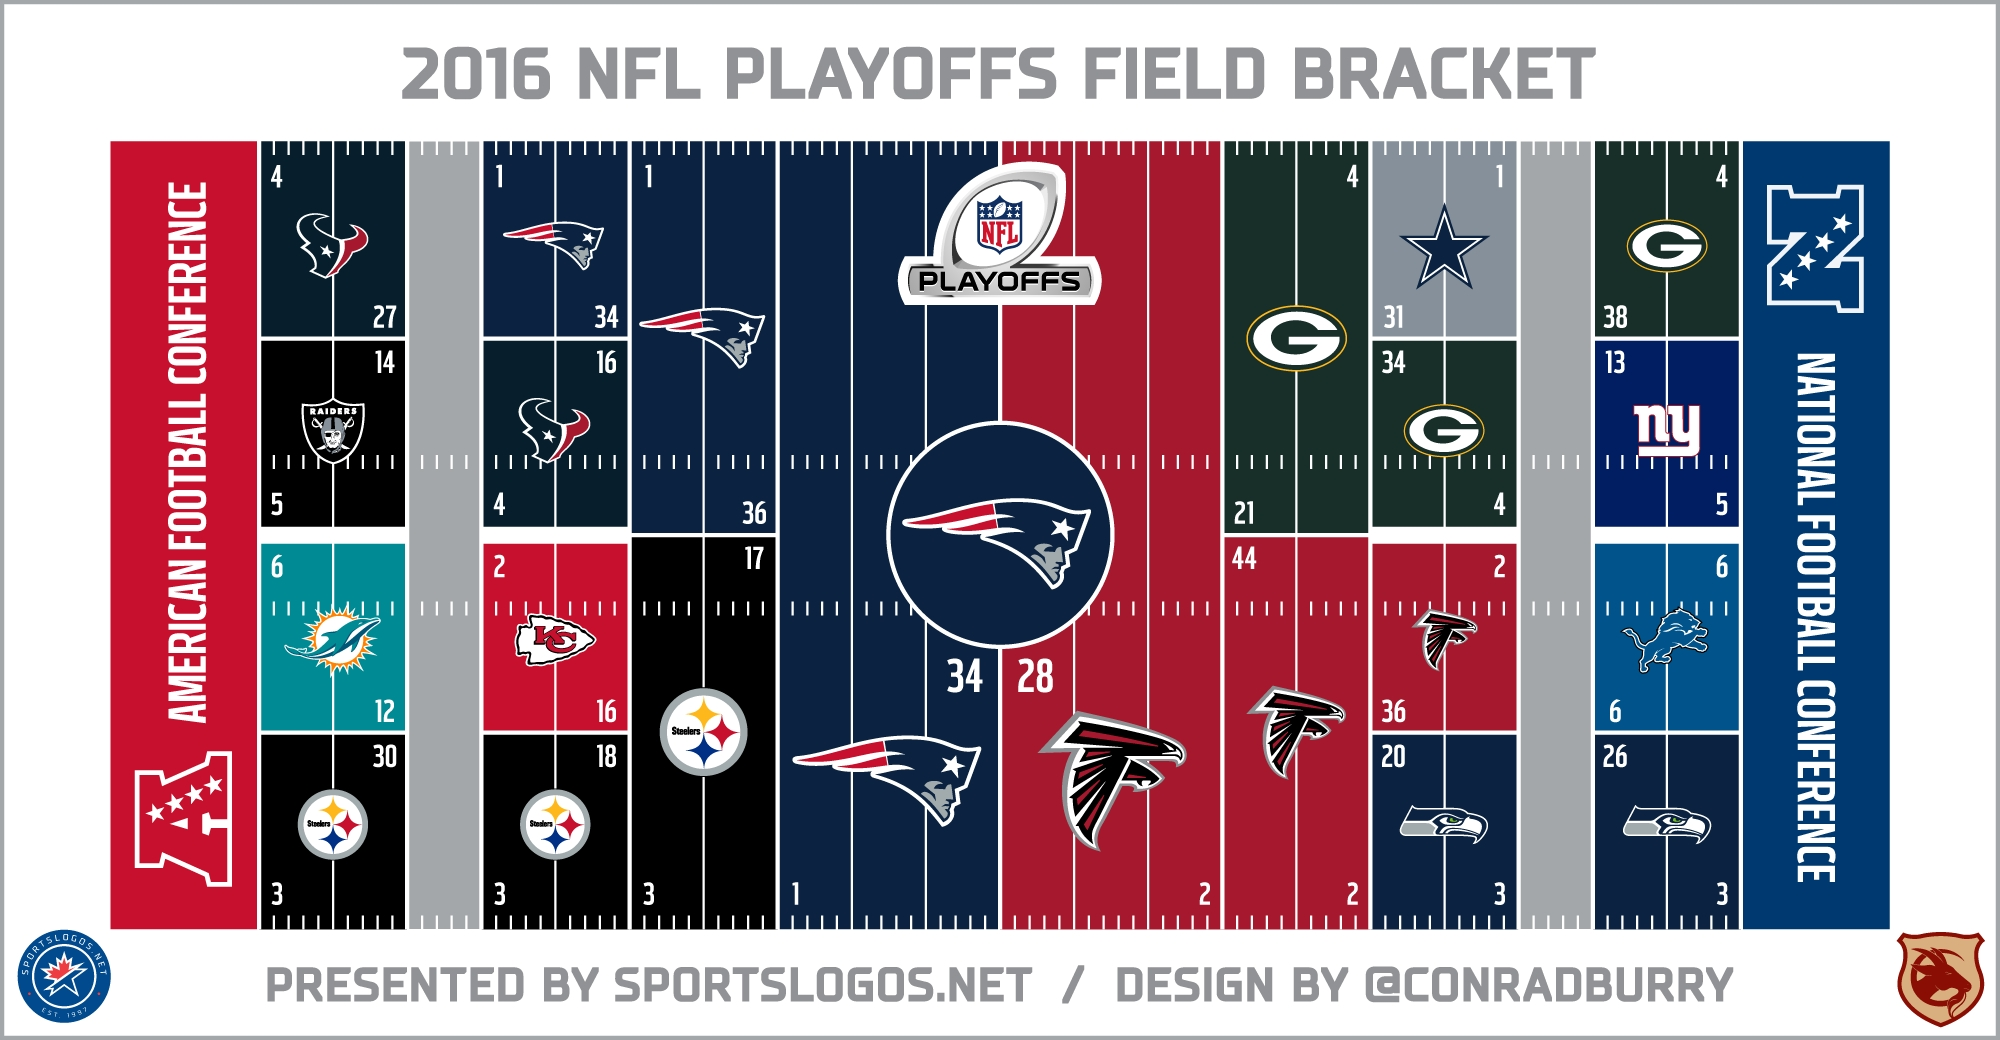 2016 Nfl Playoffs Field Bracket: Patriots Win Super Bowl Li regarding Nfl Super Bowl 2017